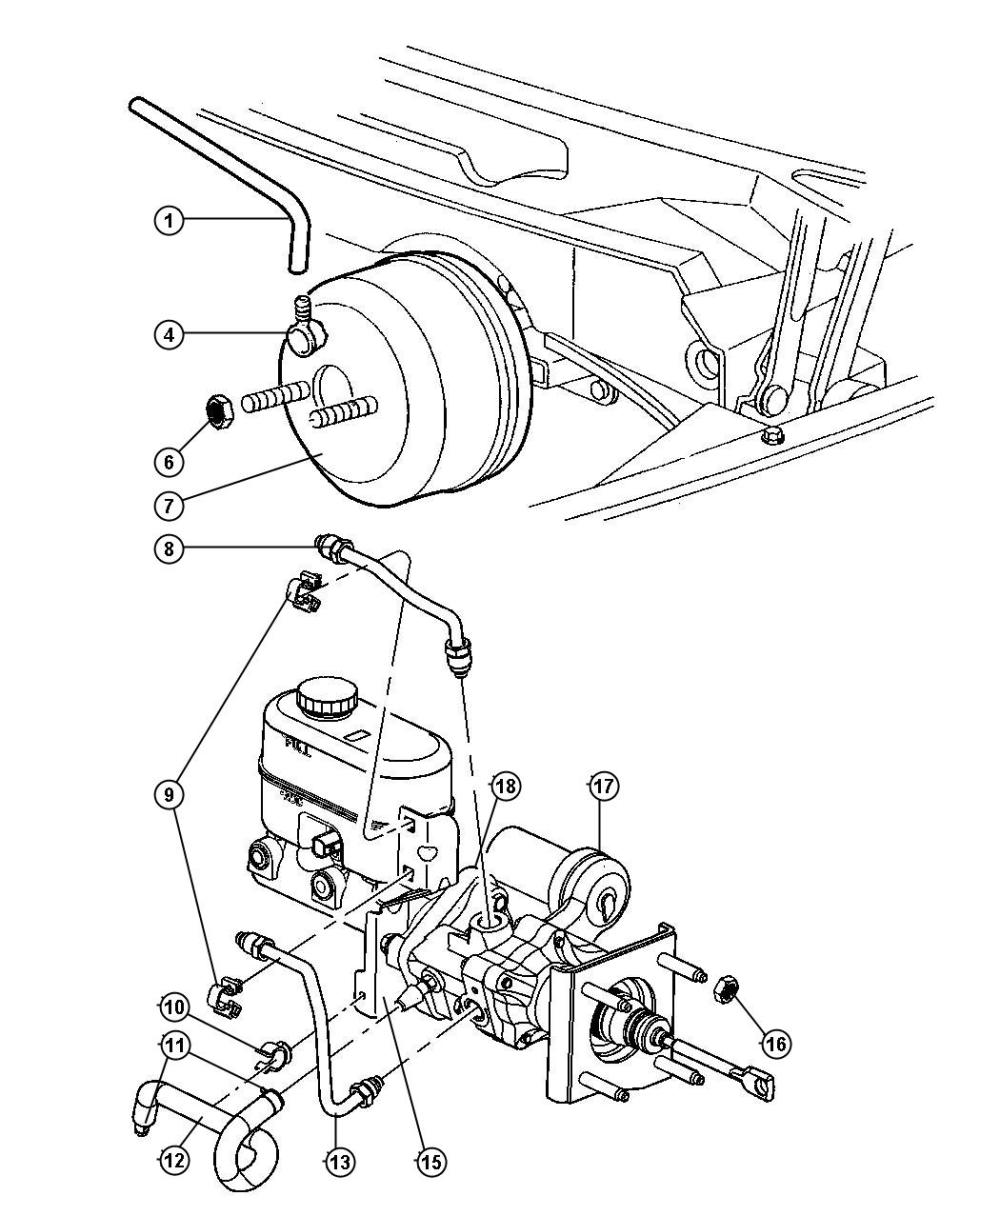 medium resolution of parts diagram for 1997 dodge ram 2500 4x4 parts free dodge 4x4 actuator diagram drivetrain diagram